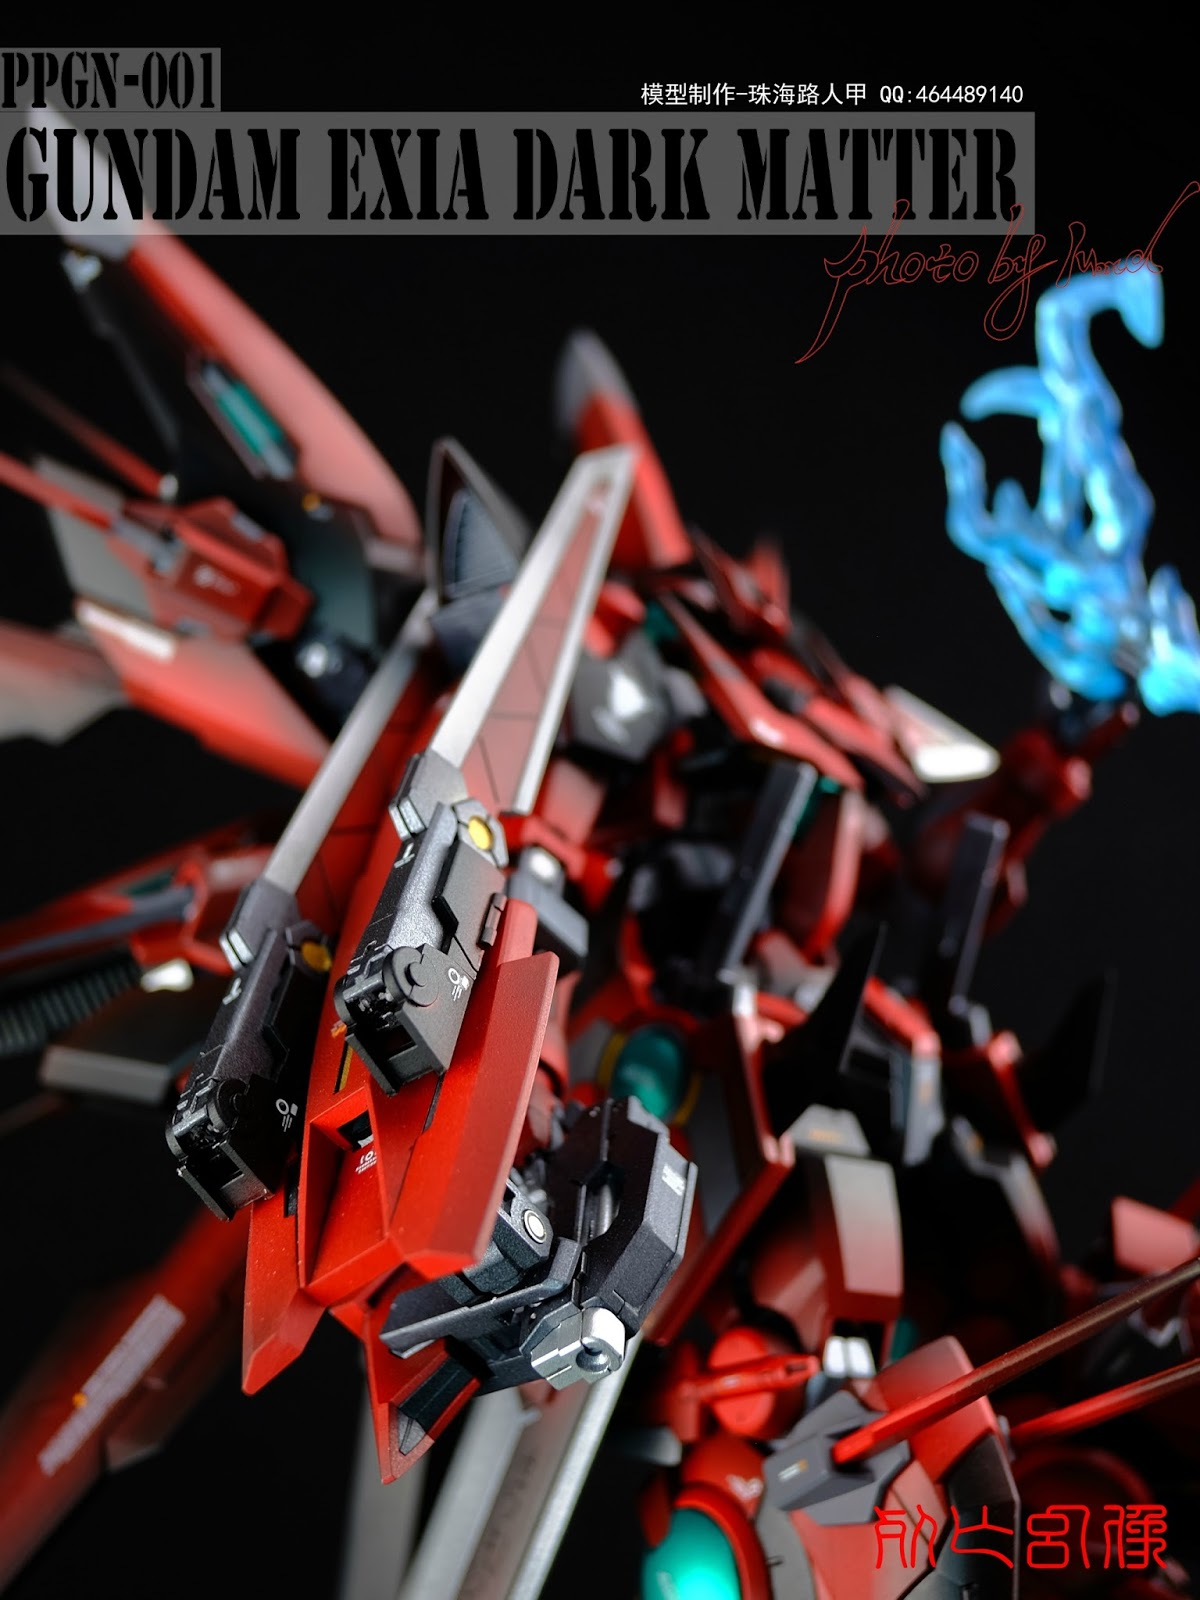 gundam exia dark matter custom - photo #17